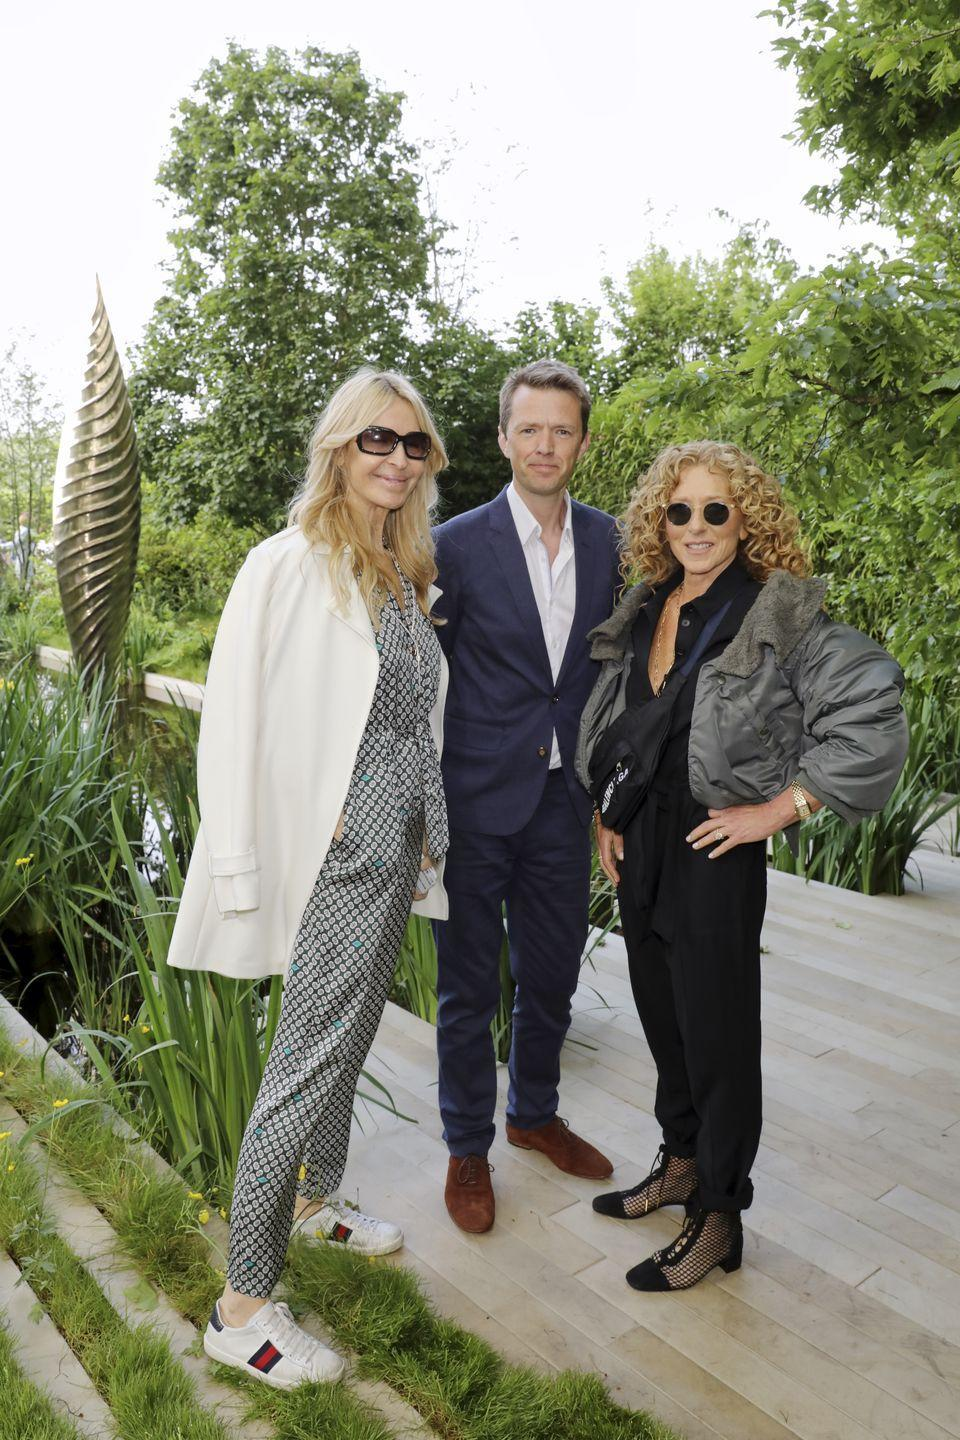 """<p>READ MORE...</p><p>• <strong><a href=""""https://www.housebeautiful.com/uk/lifestyle/shopping/a25435241/kelly-hoppen-mickey-mouse-rugs/"""" rel=""""nofollow noopener"""" target=""""_blank"""" data-ylk=""""slk:Kelly Hoppen launches range of Mickey Mouse rugs"""" class=""""link rapid-noclick-resp"""">Kelly Hoppen launches range of Mickey Mouse rugs</a></strong></p><p><strong>• <a href=""""https://www.housebeautiful.com/uk/lifestyle/property/news/a2062/kelly-hoppen-interior-design-highgate-property-for-sale/"""" rel=""""nofollow noopener"""" target=""""_blank"""" data-ylk=""""slk:Kelly Hoppen designed every room in this extravagant Highgate property"""" class=""""link rapid-noclick-resp"""">Kelly Hoppen designed every room in this extravagant Highgate property</a><br></strong></p>"""